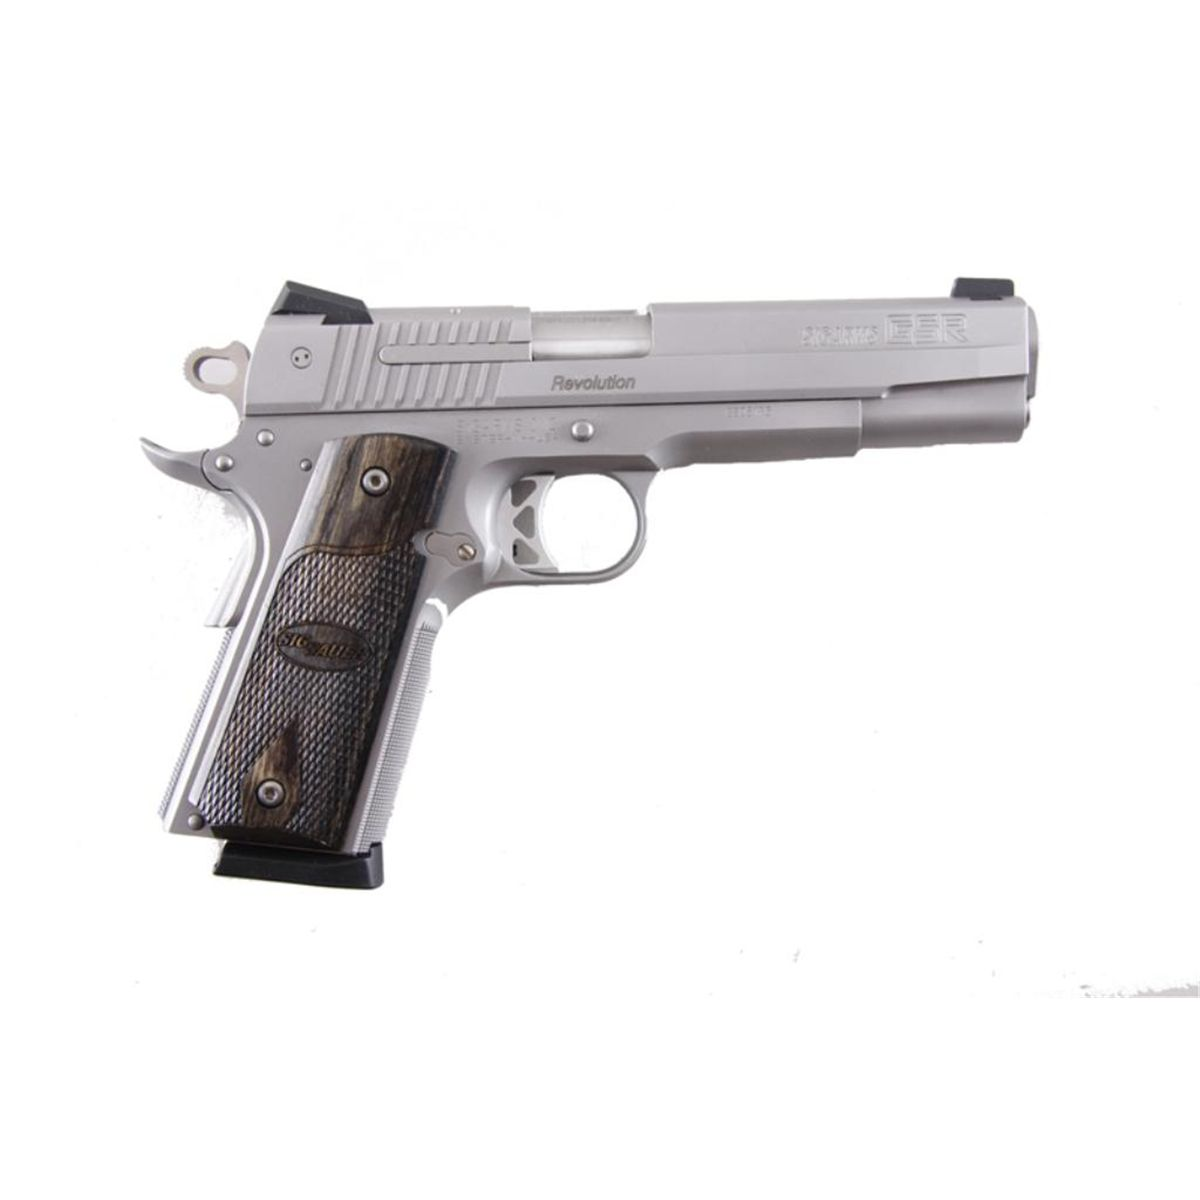 Sig Sauer Mdl Gsr Revolution Cal 45acp Sn Gs05173 Single